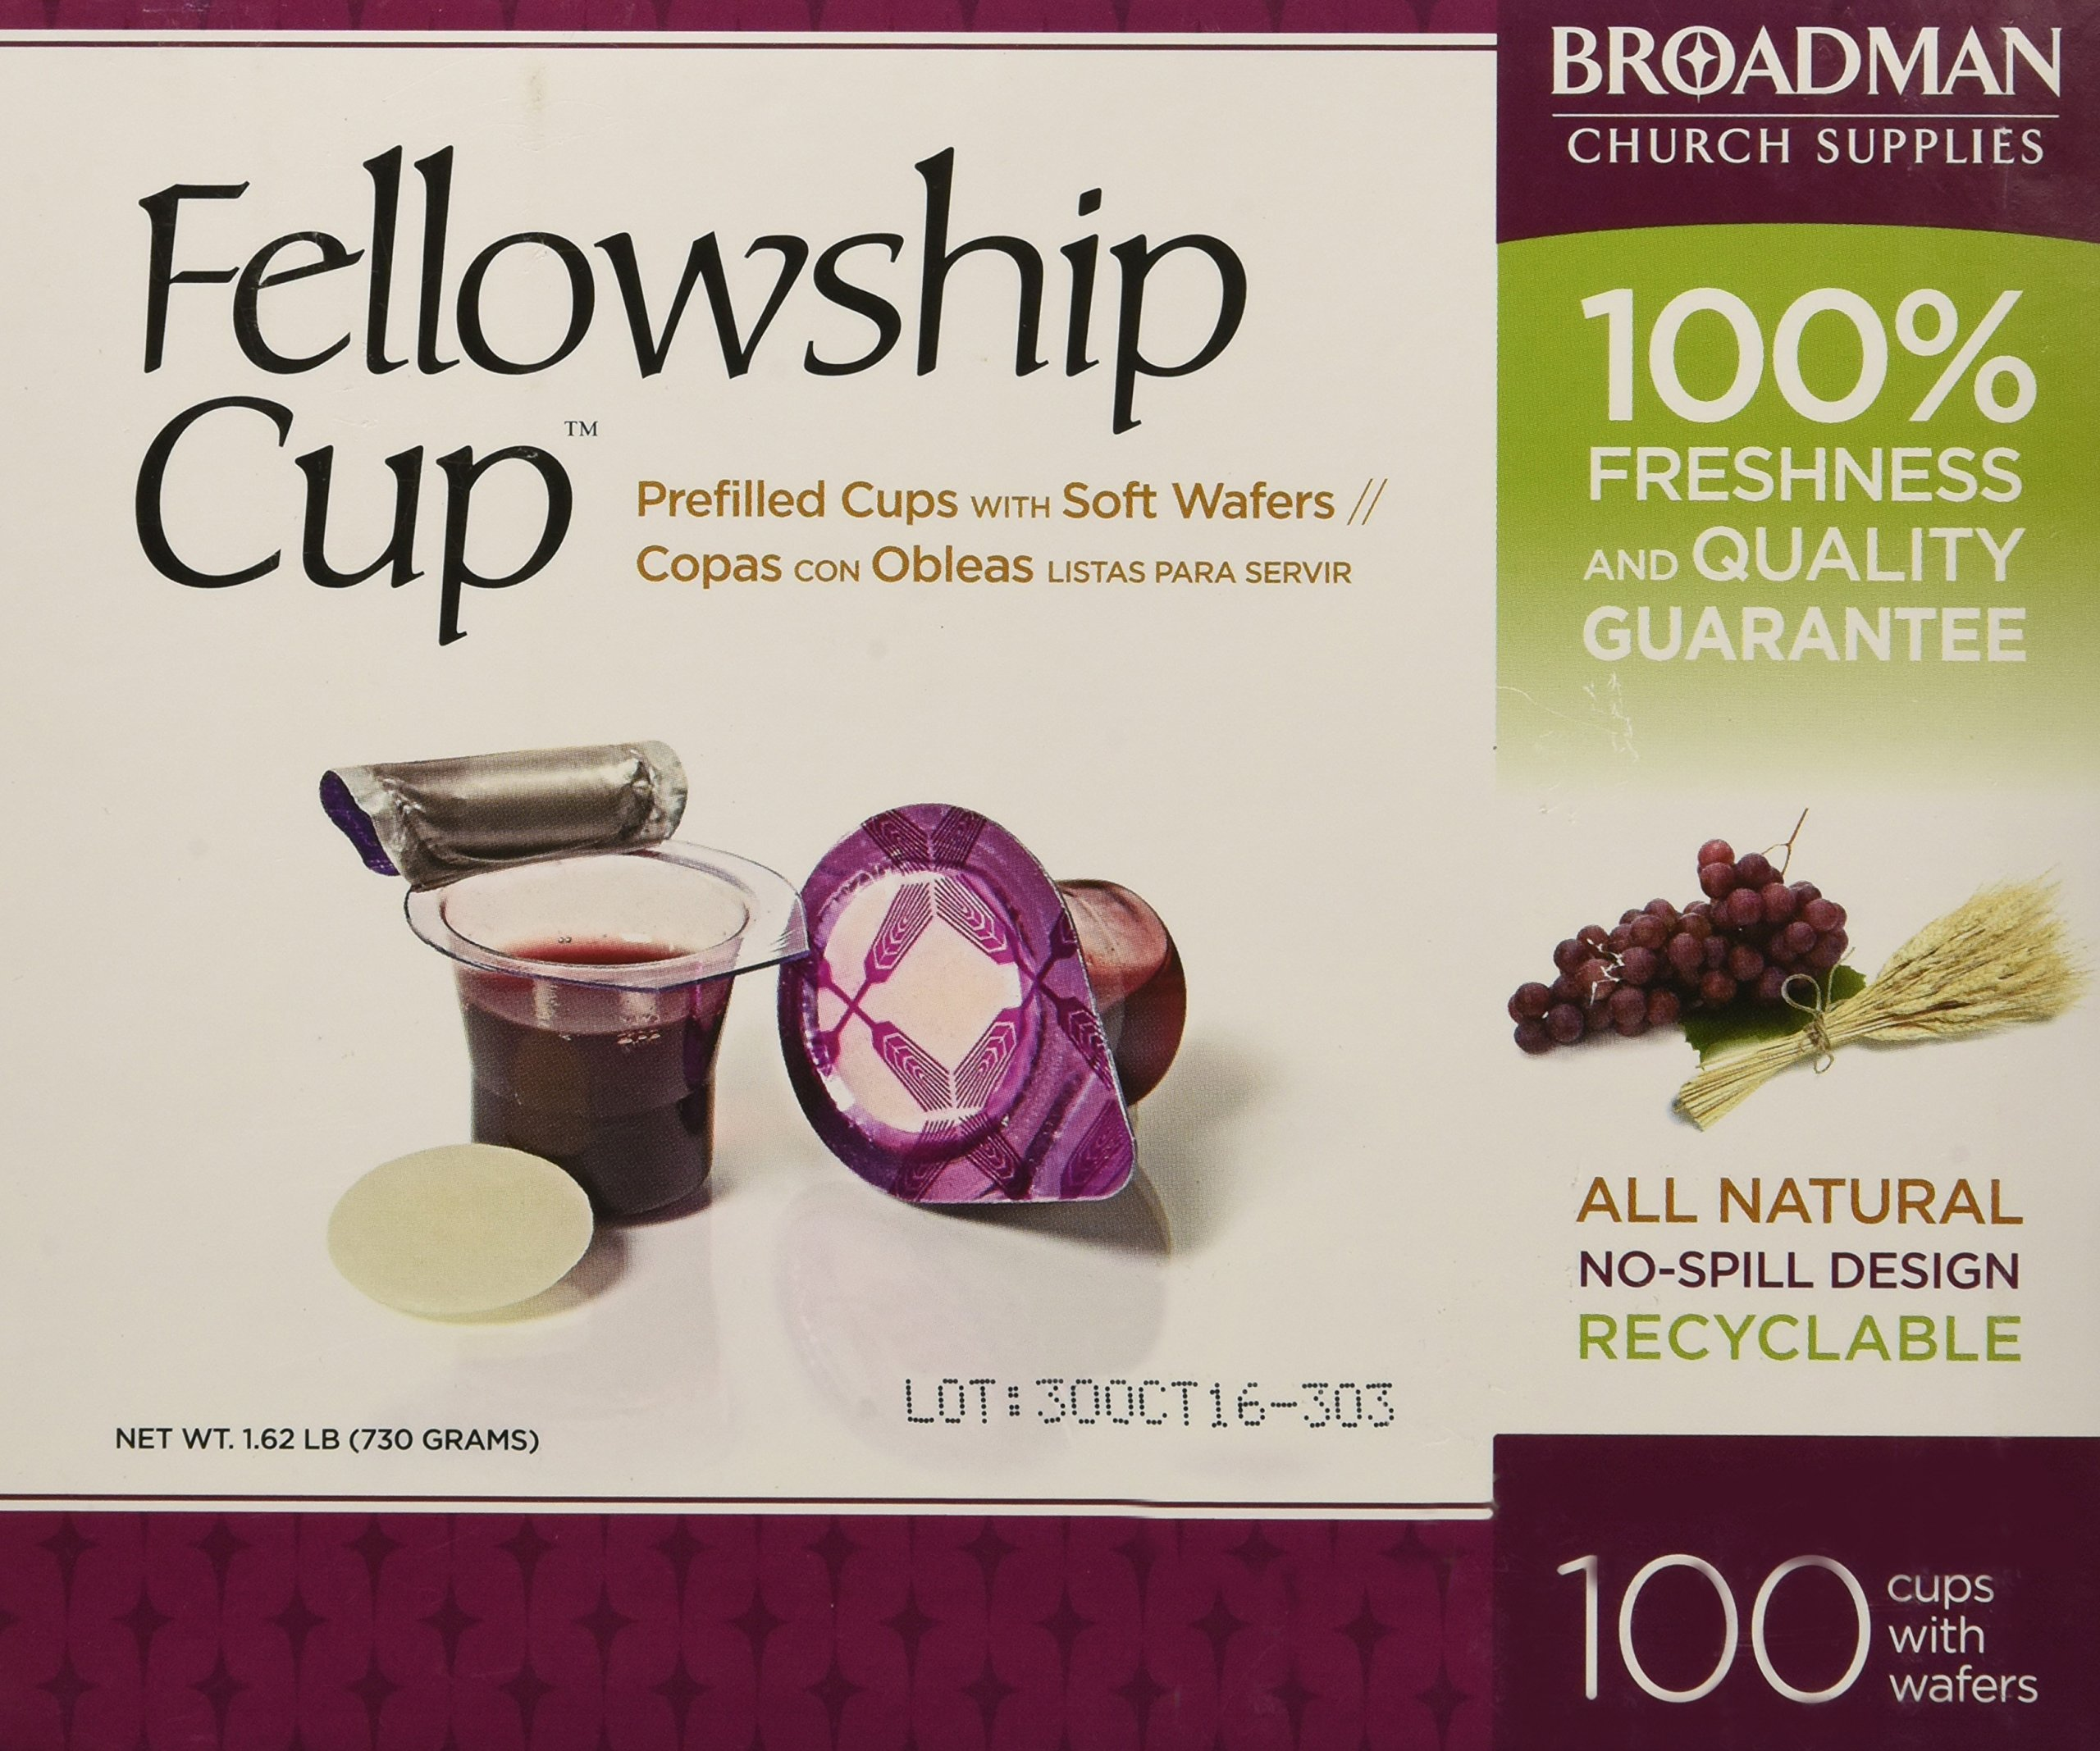 Fellowship Cup Communion Wafer & Juice 100pk by B&H Publishing Group